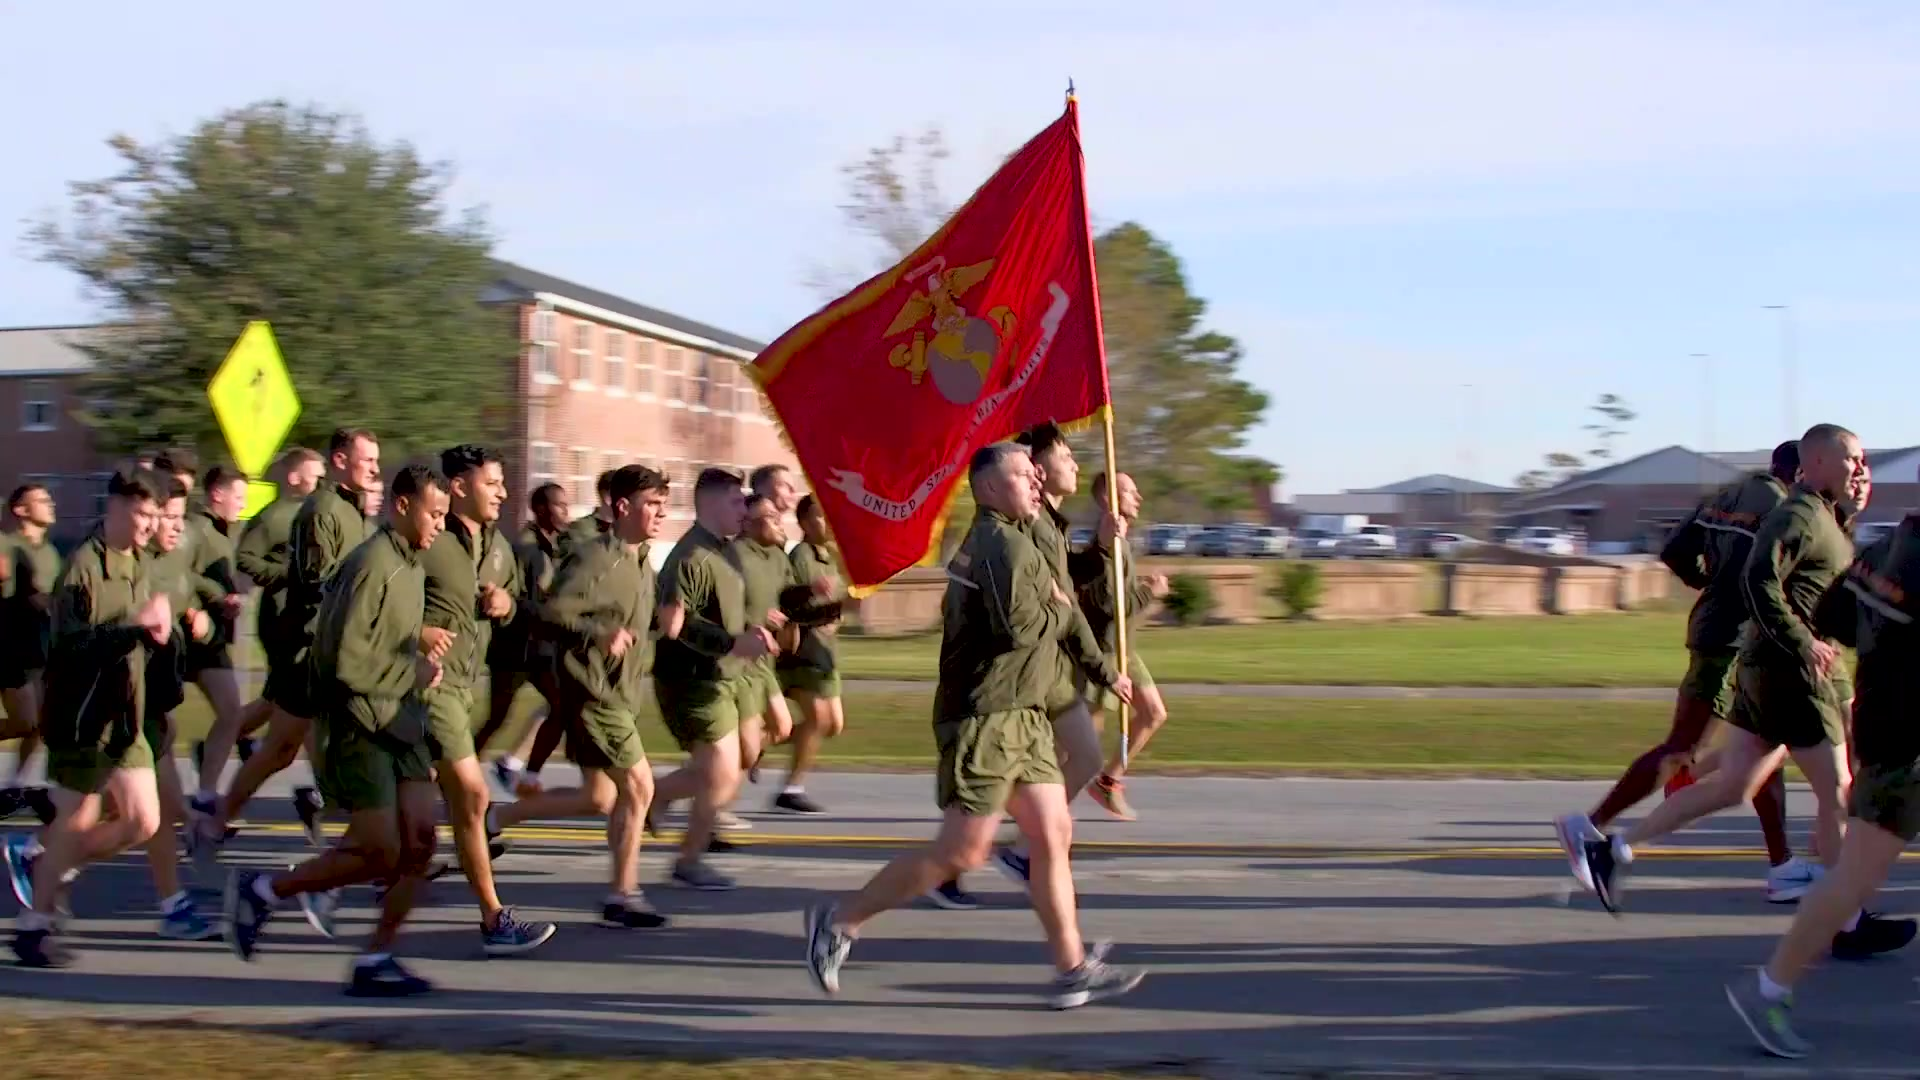 Marines with 2nd Marine Aircraft Wing (MAW) and Headquarters and Headquarters Squadron participated in 2nd MAW's annual birthday run on Marine Corps Air Station Cherry Point, North Carolina, Nov. 22, 2019. The run commemorated the 244th birthday of the Marine Corps. (U.S. Marine Corps video by Cpl. Cody Rowe)